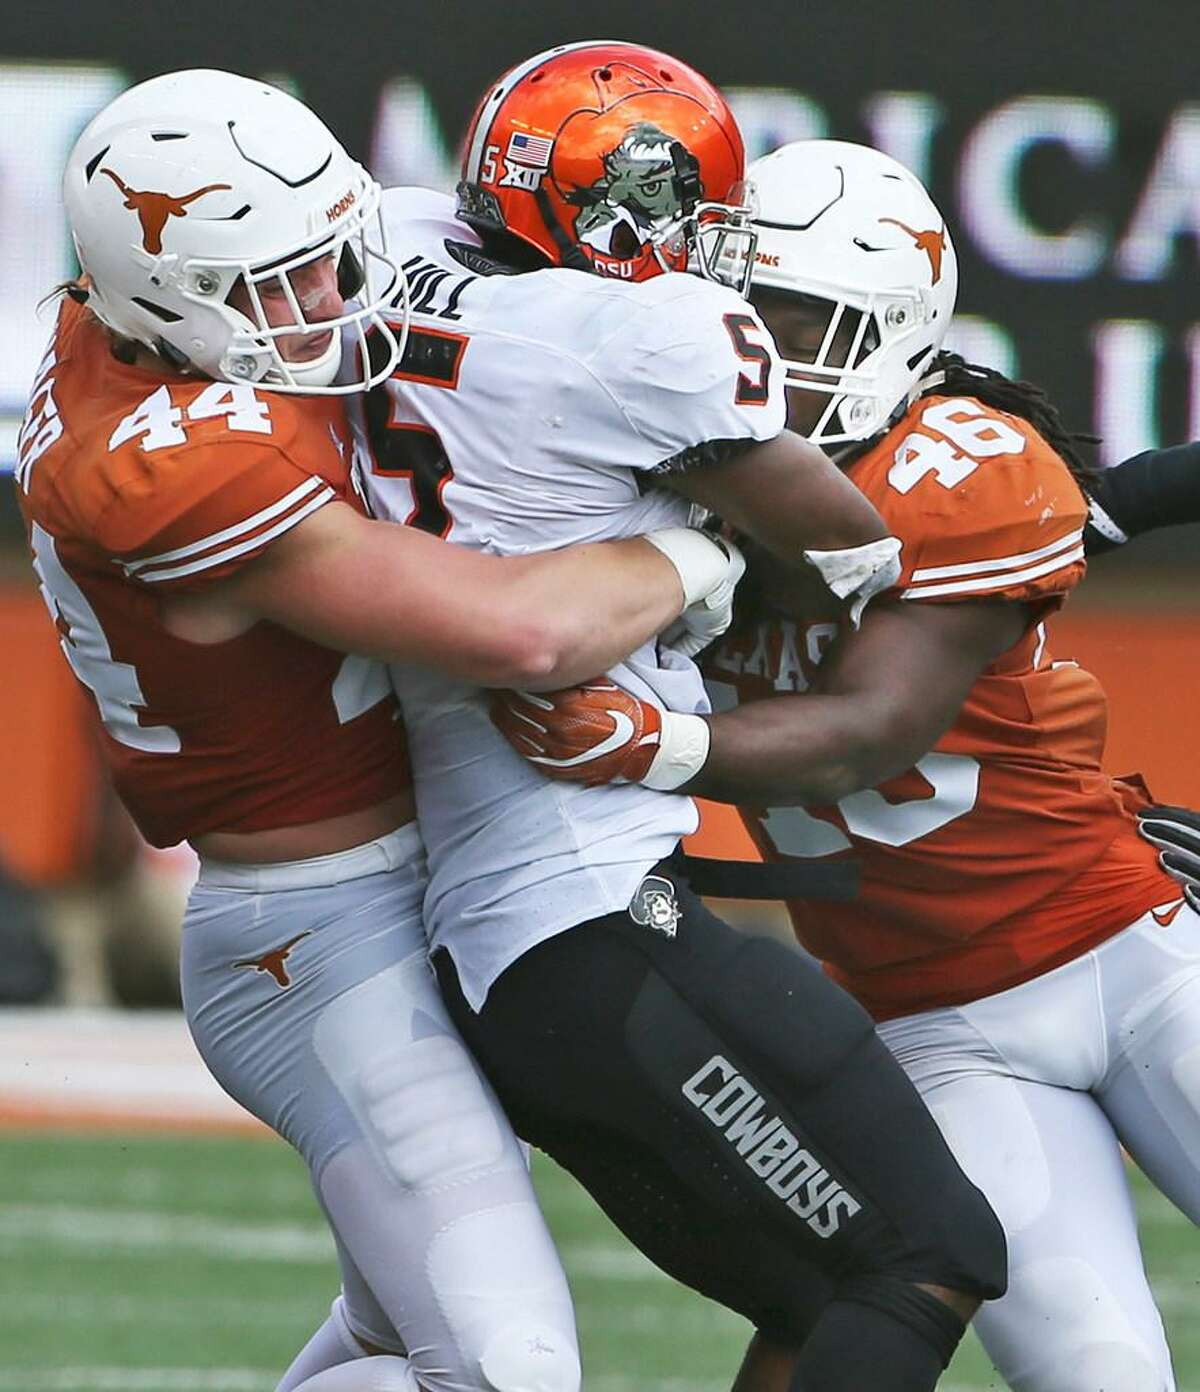 Texas linebackers Breckyn Hager and Malik Jefferson tackle Oklahoma State's Justice Hill during OSU's overtime victory Oct. 21, 2017 in Austin.